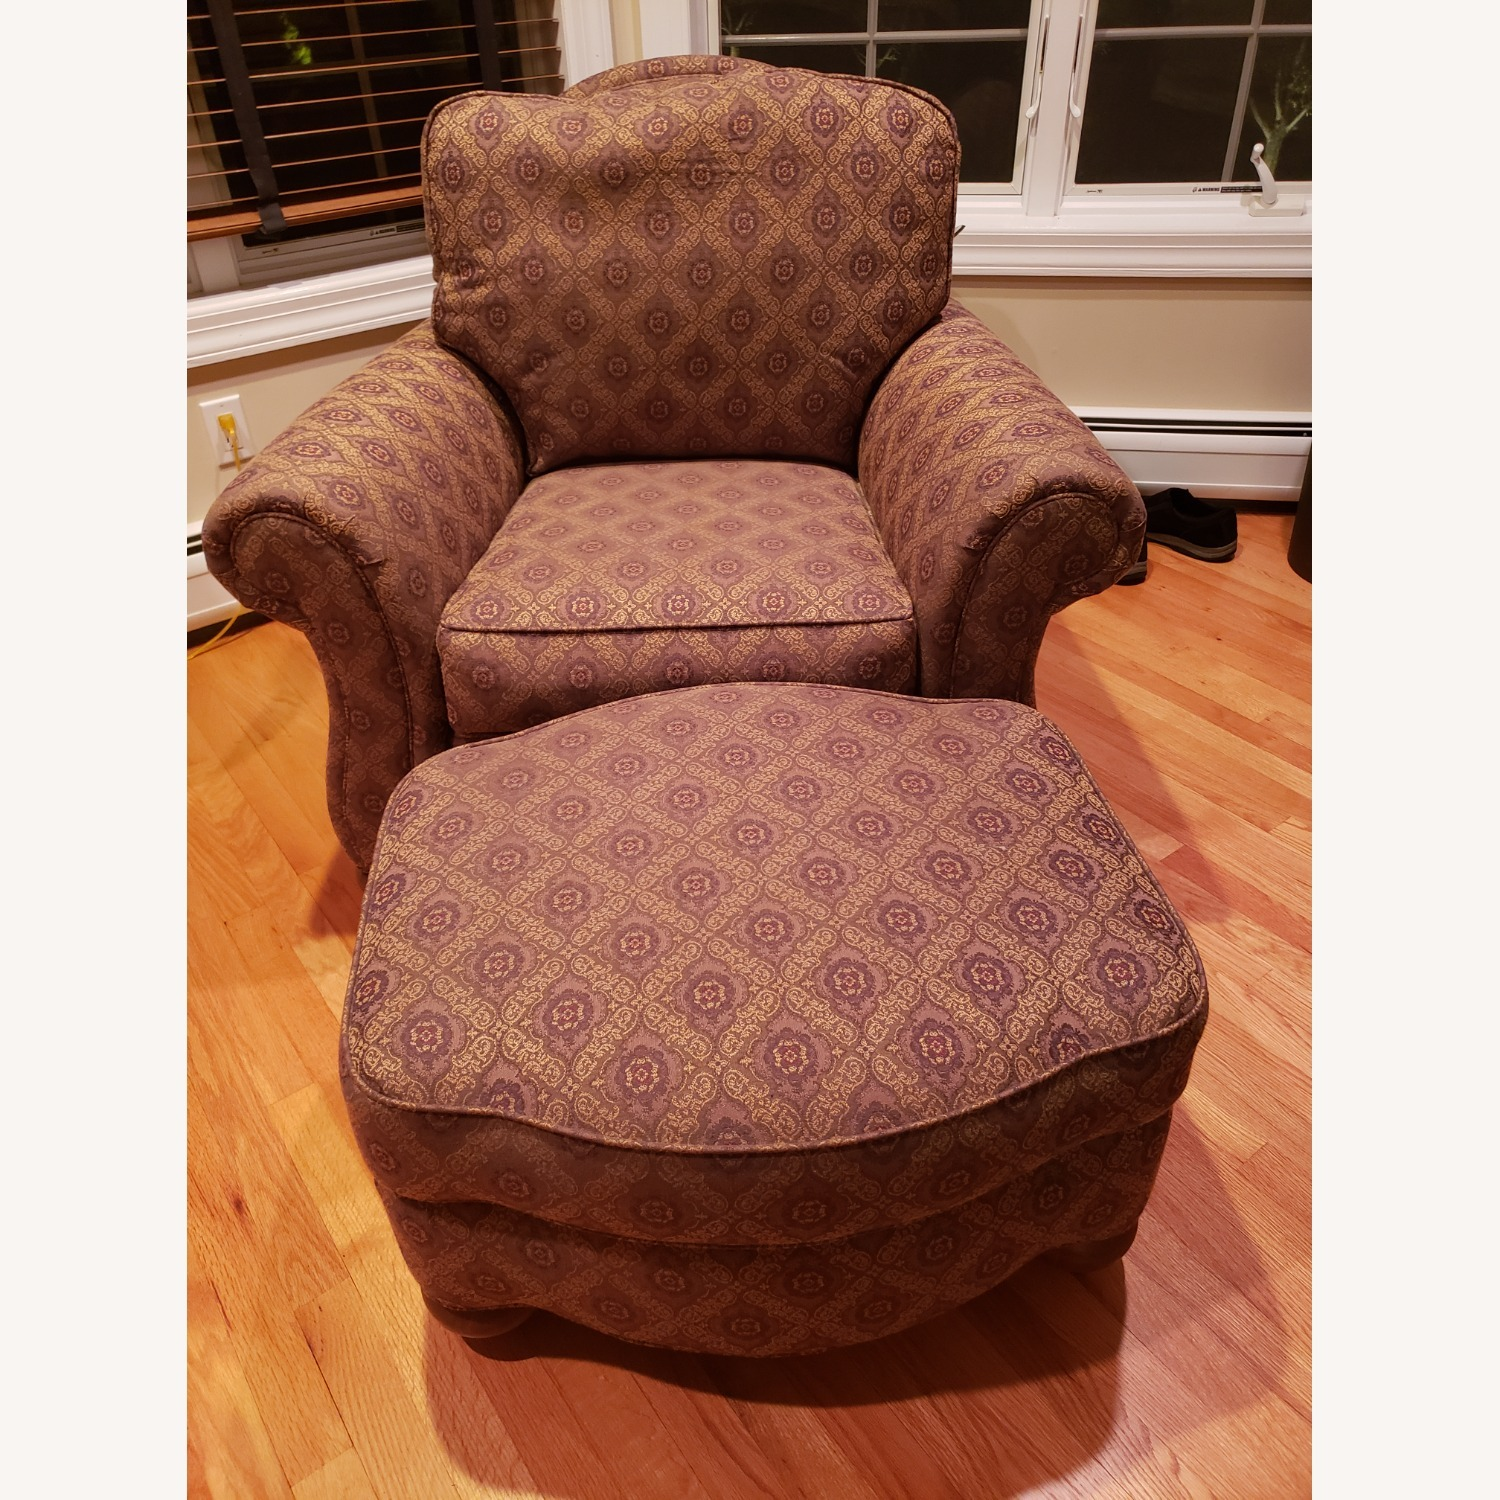 Ethan Allen Chair with Ottoman - image-2